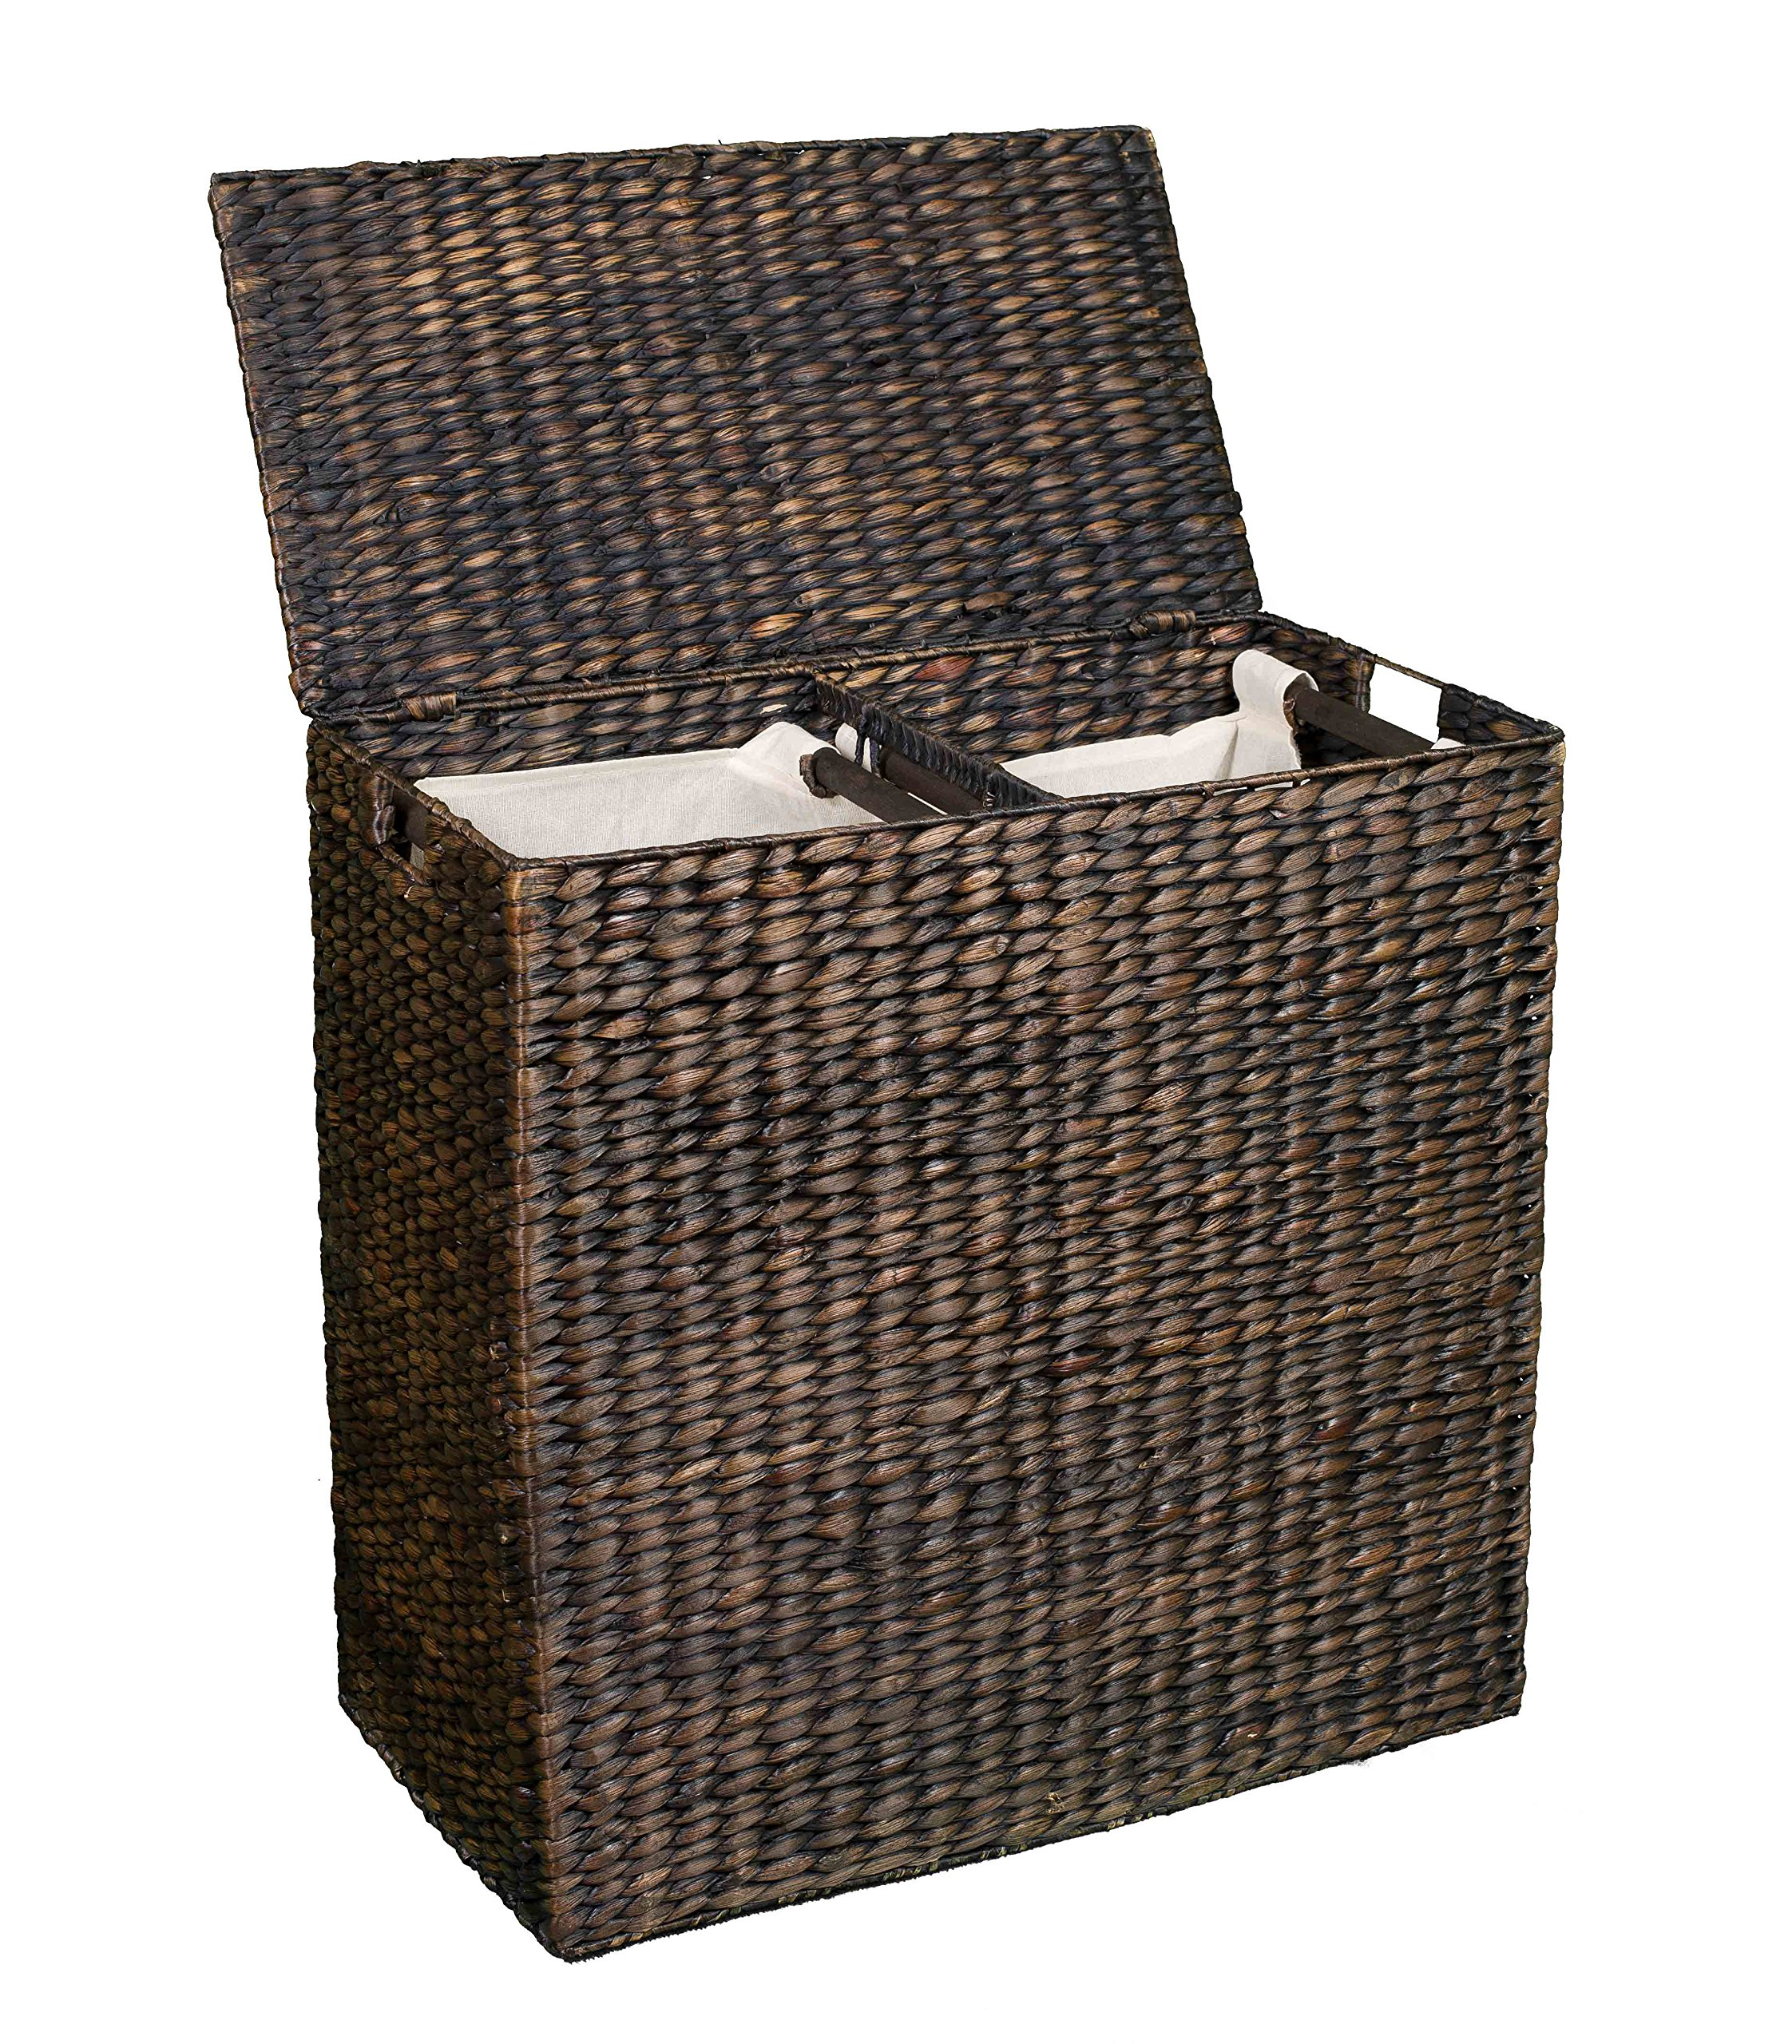 Decorative Laundry Items Birdrock Home Water Hyacinth Laundry Hamper With Divided